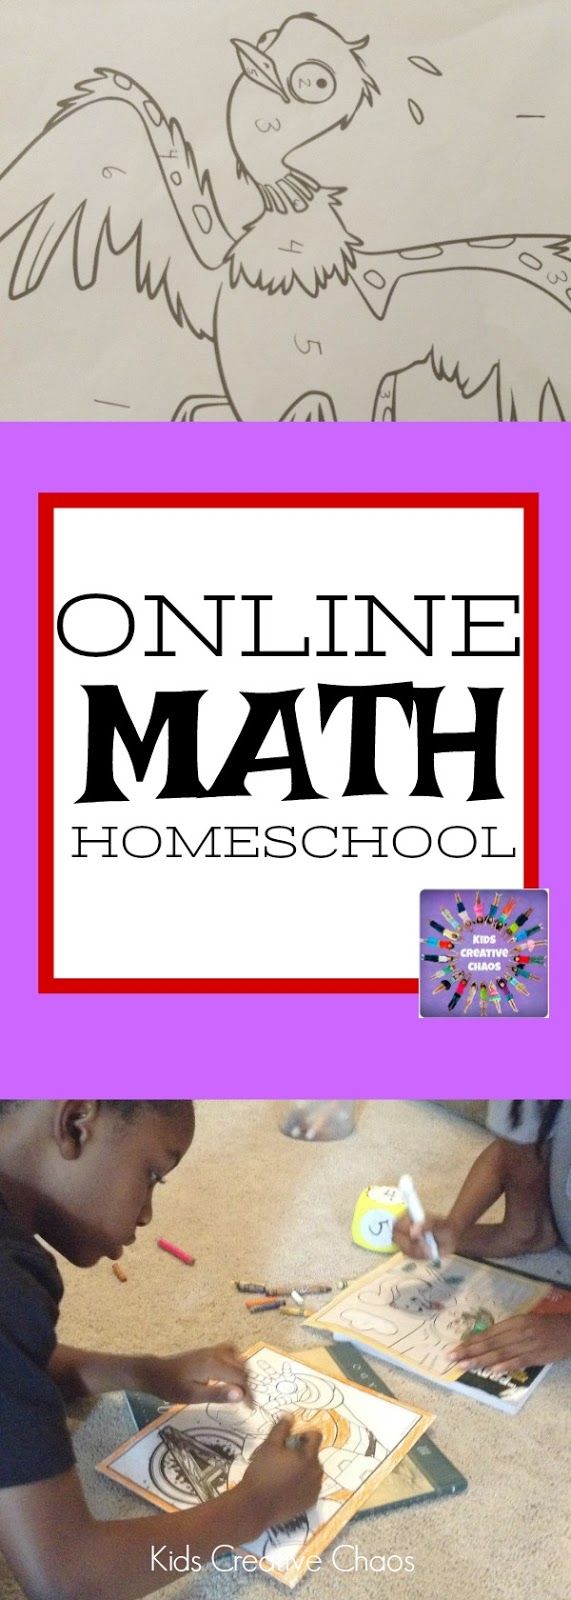 Math for Homeschoolers Online